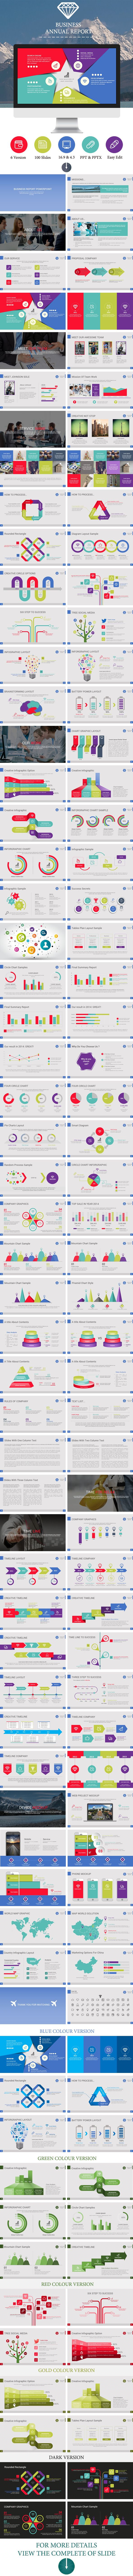 Business Report PowerPoint Template #powerpoint #powerpointtemplate Download: http://graphicriver.net/item/business-report-powerpoint-template/9099176?ref=ksioks